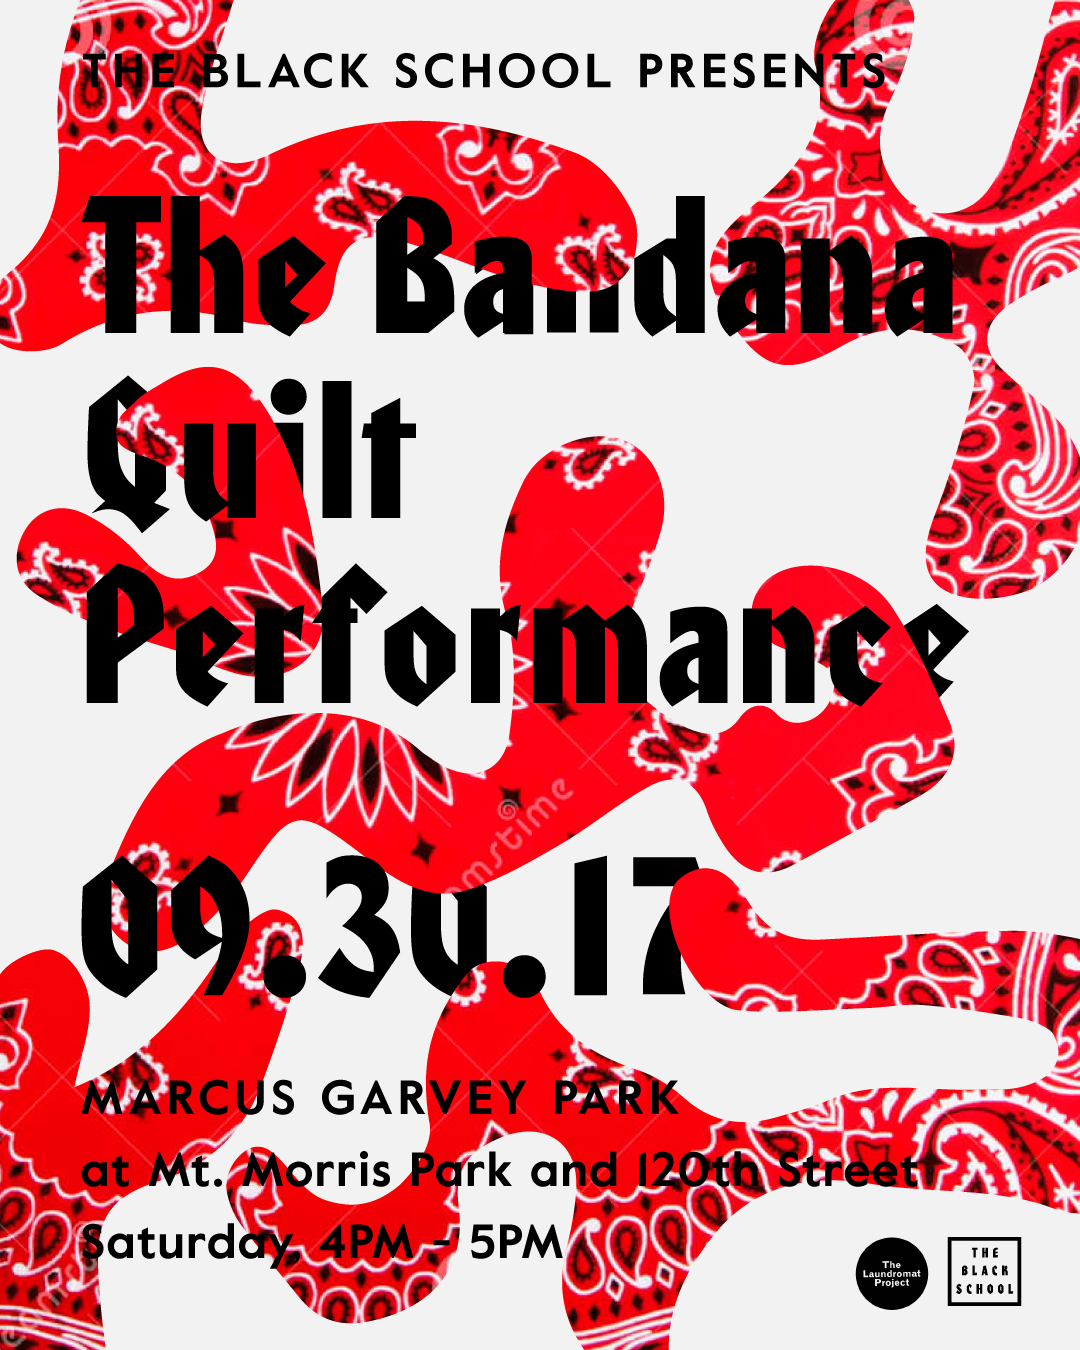 Bandana-Quilt-Performance-Flyers